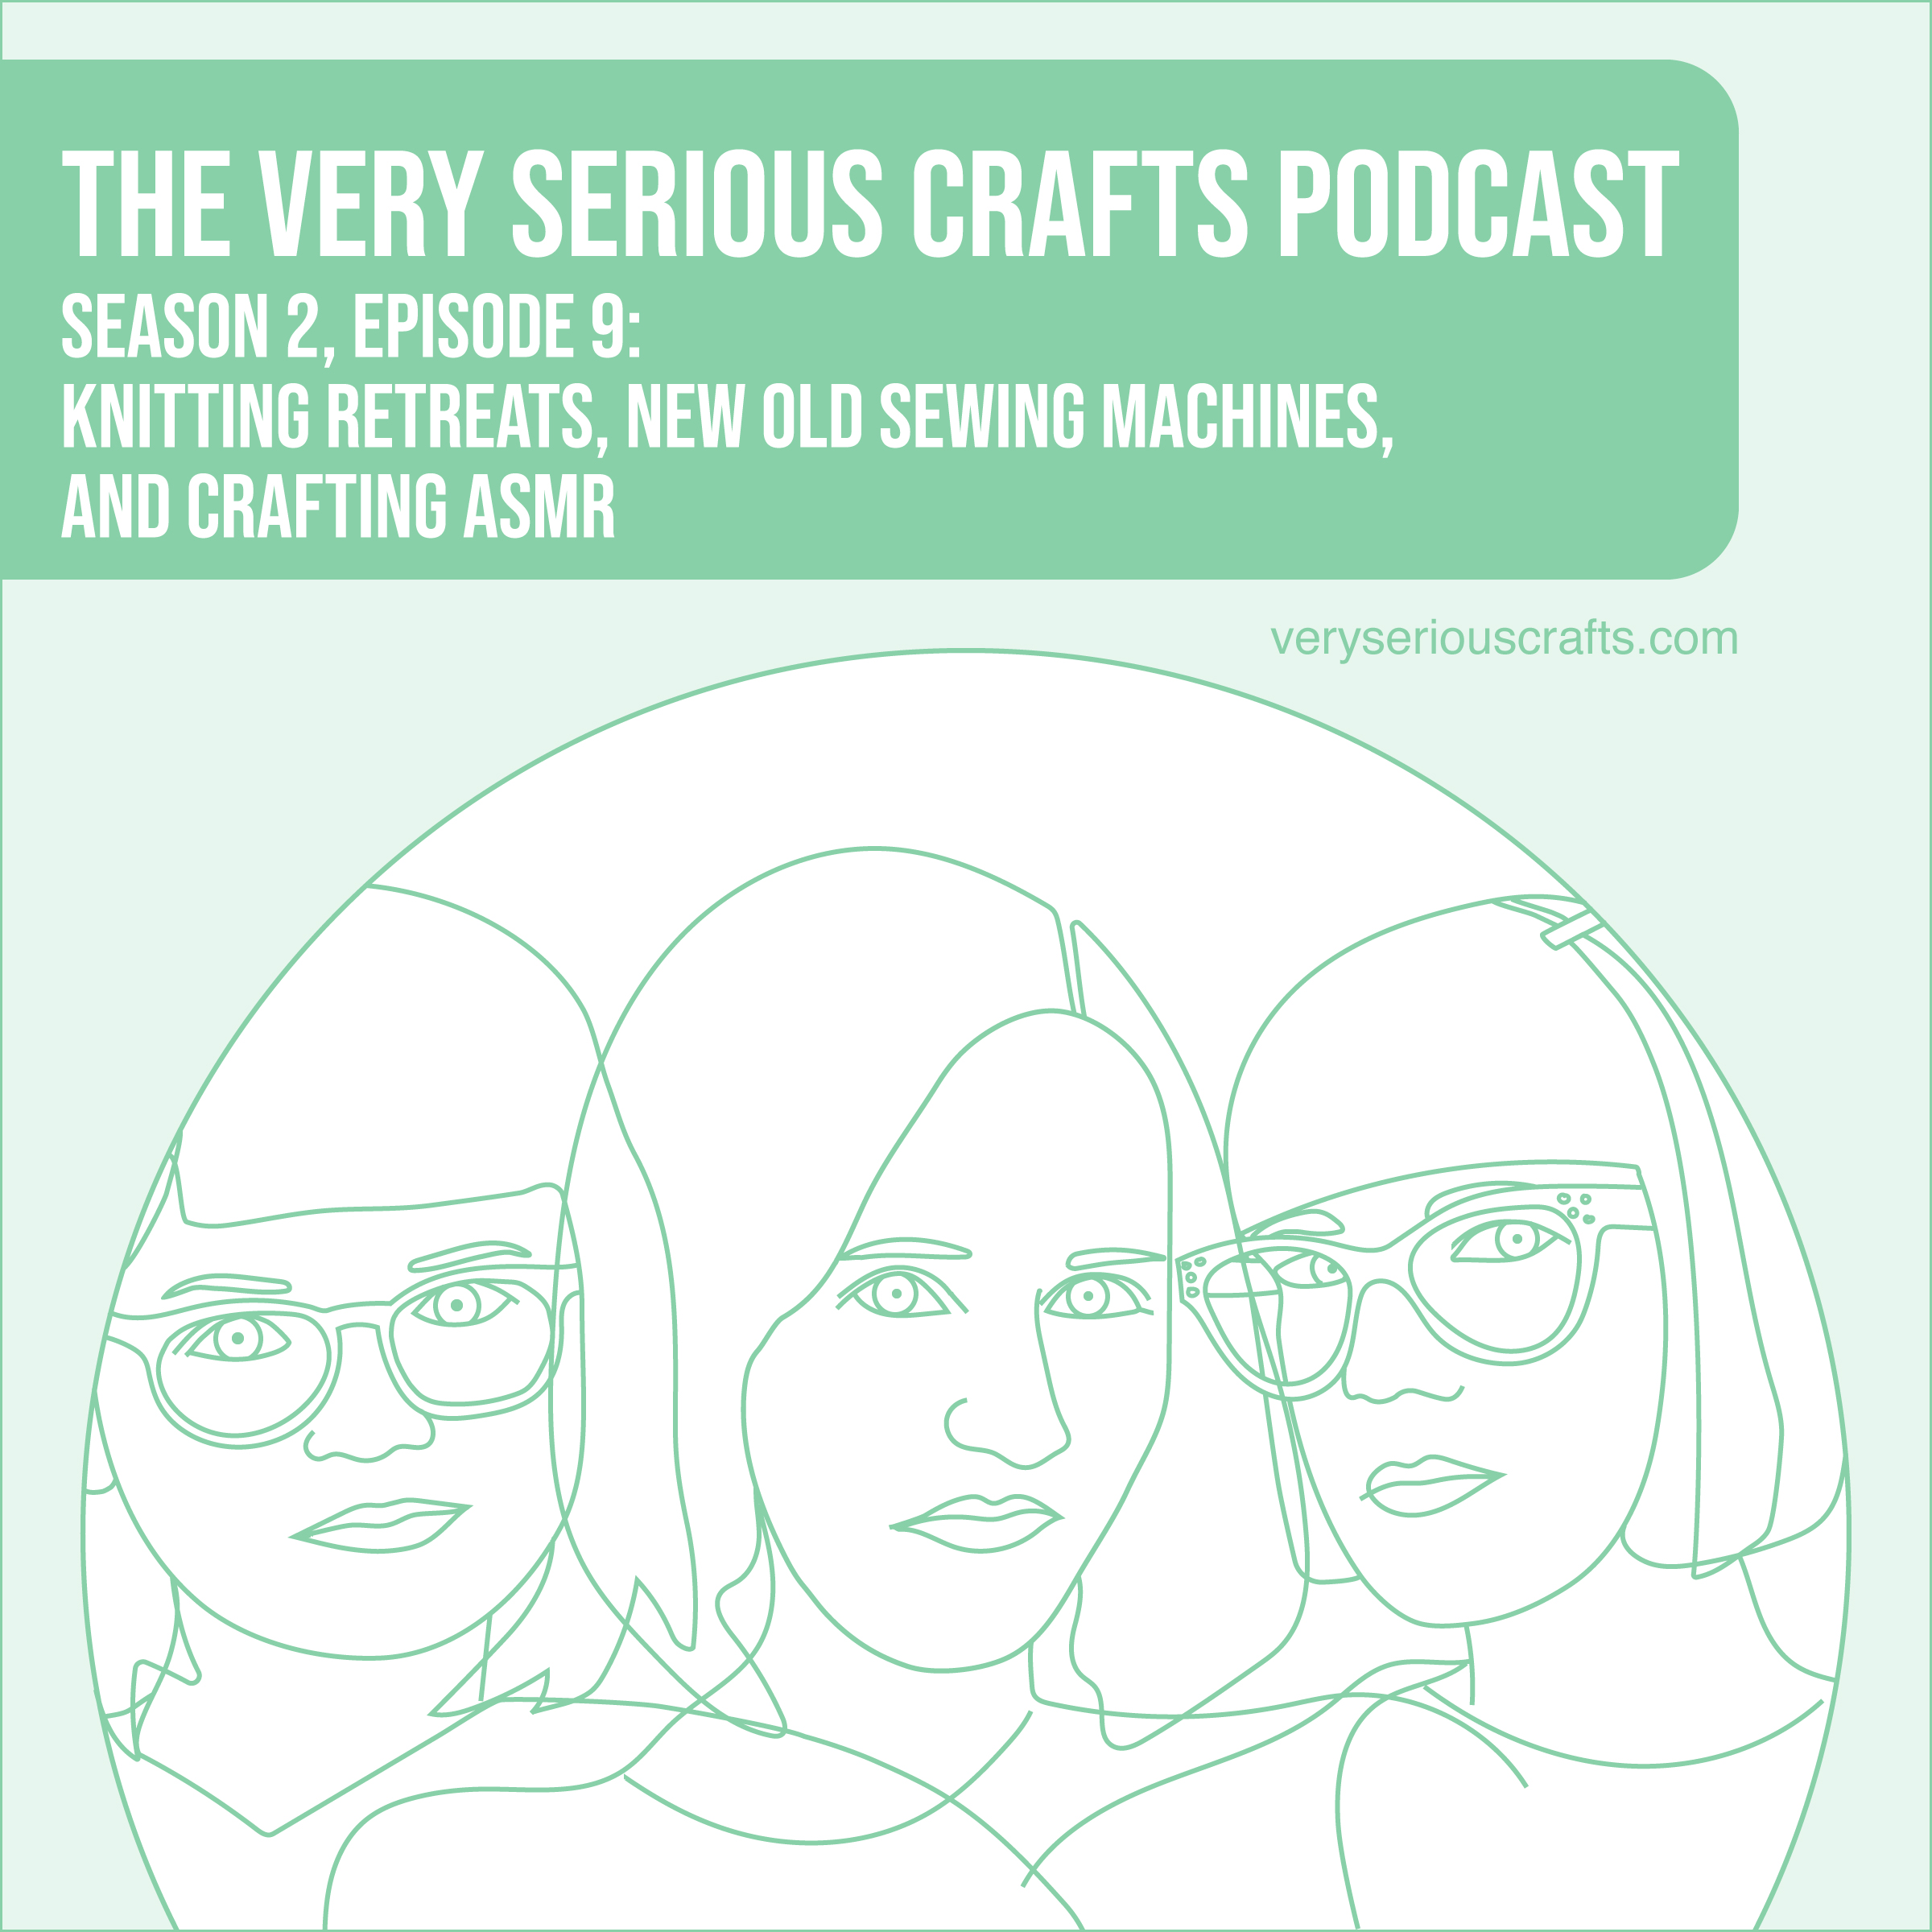 S2E09: Knitting Retreats, New Old Sewing Machines, and Crafting ASMR